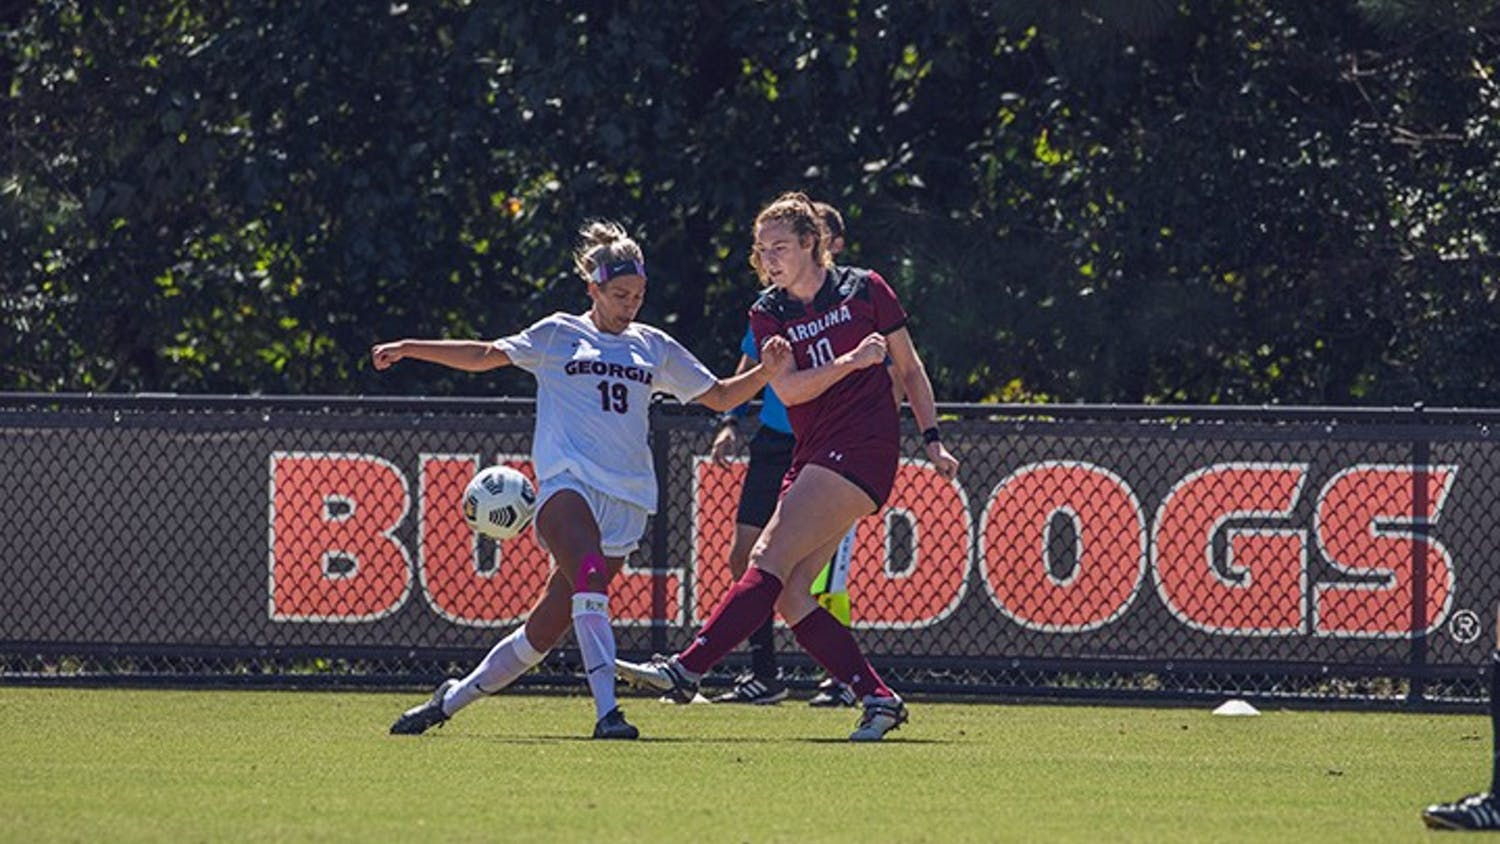 Freshman forward Catherine Barry dribbles around a defender in the 2020 season game against Georgia. Barry is one of eight freshmen on the Gamecocks' roster.